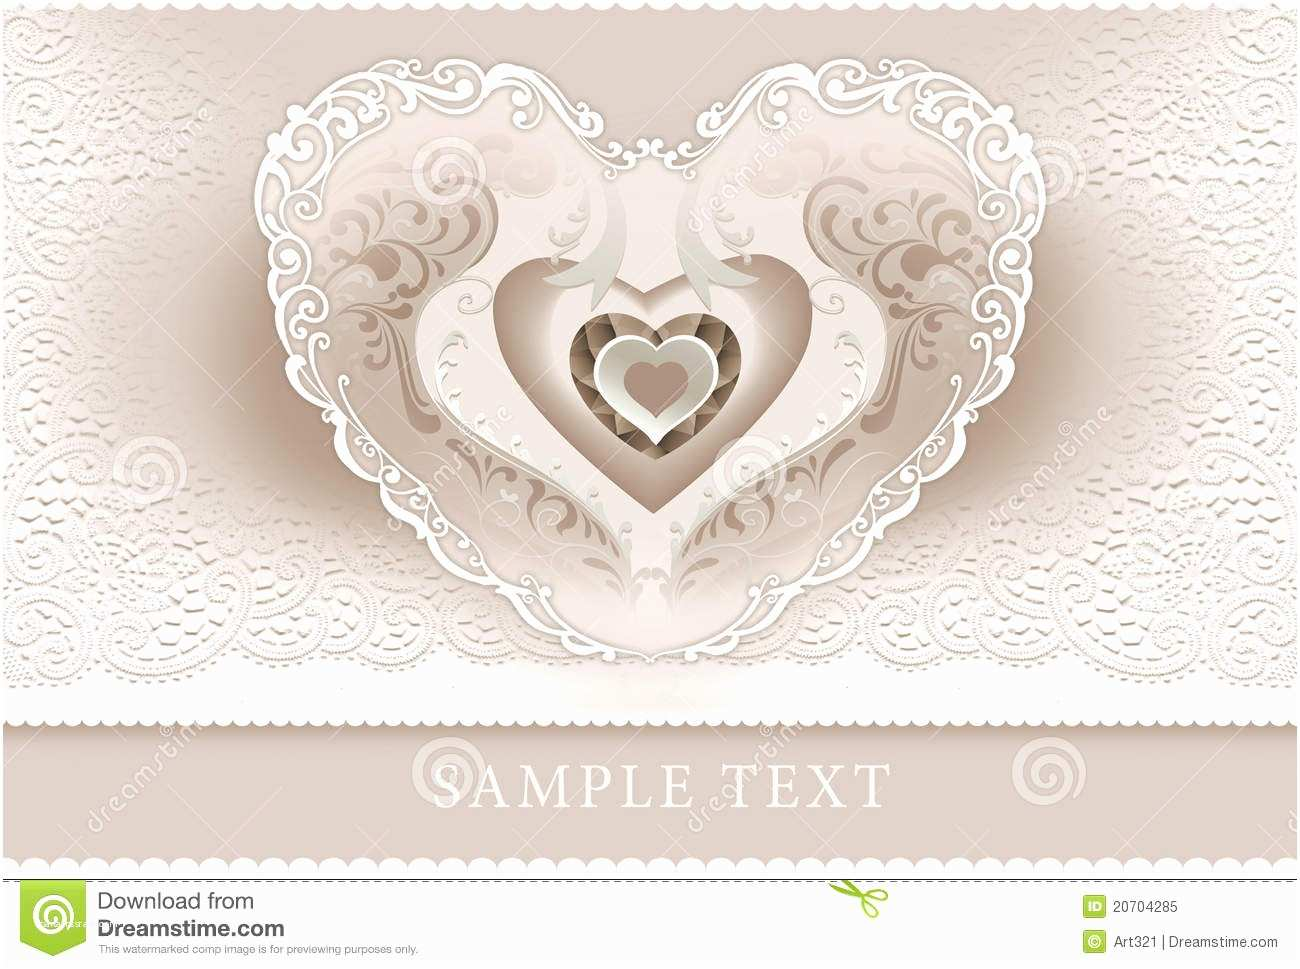 Wedding Invitation Frame Wedding Invitation Frame Heart Royalty Free Stock